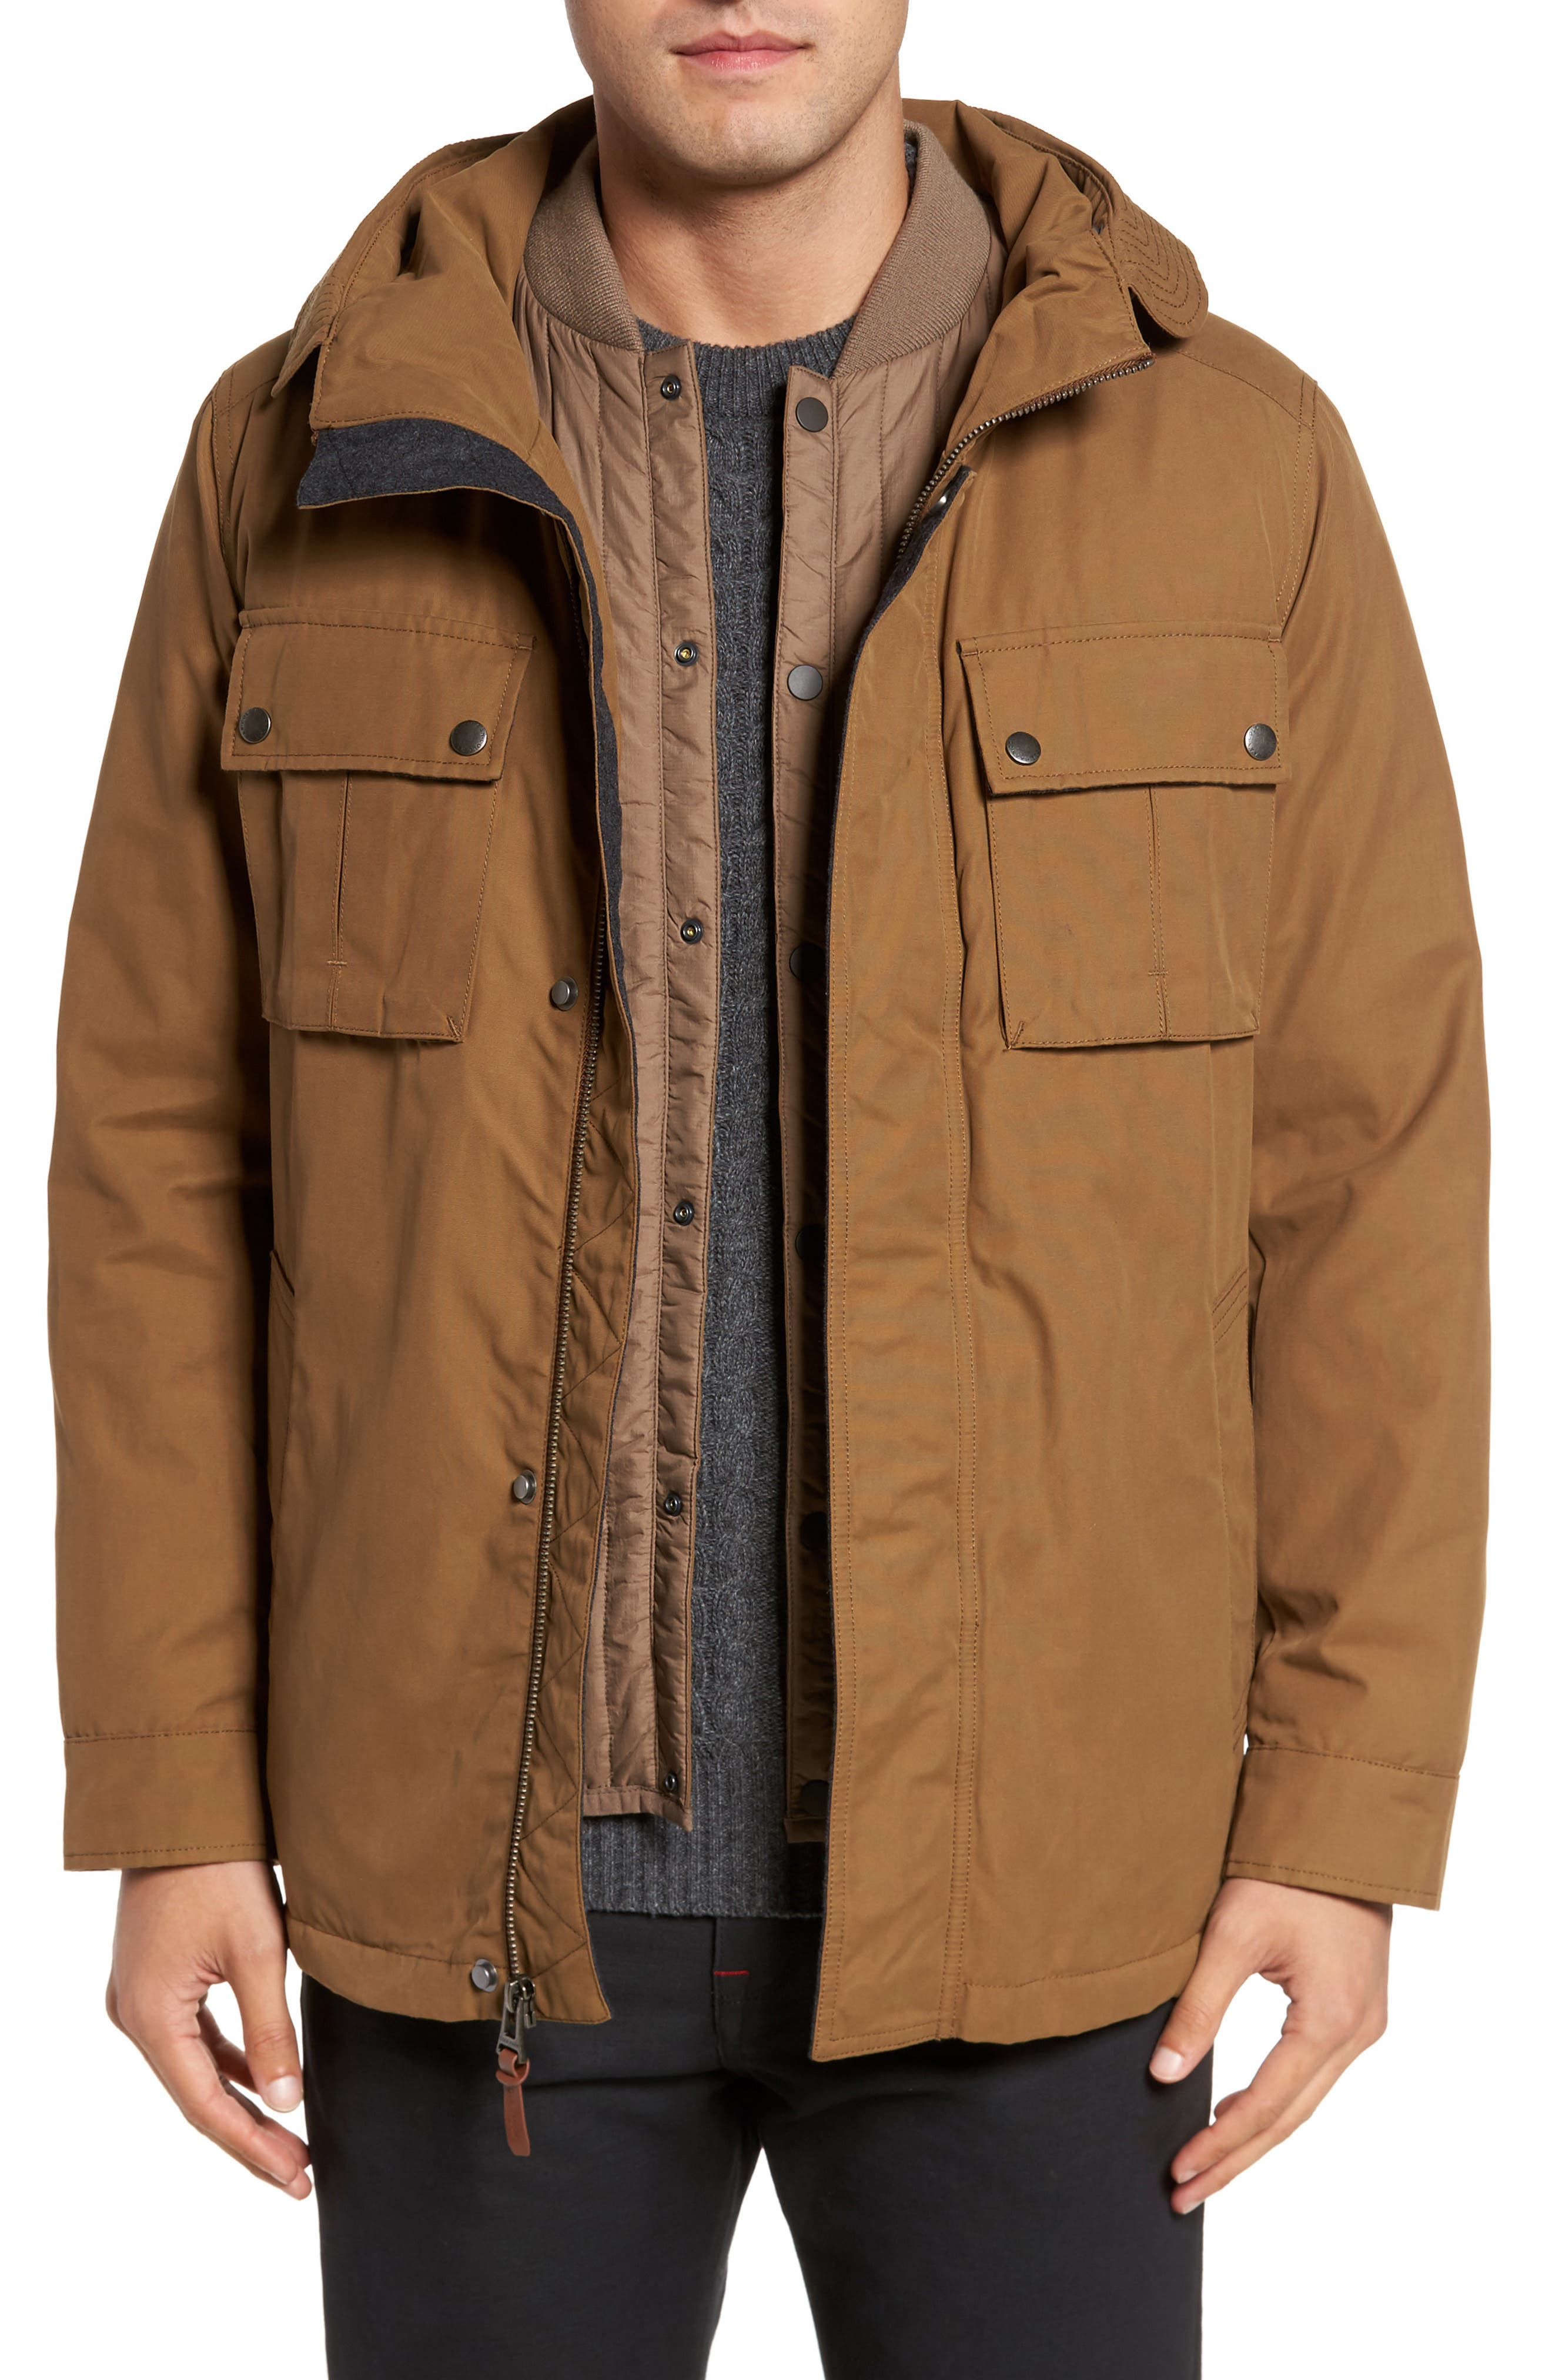 Cole Haan 3-in-1 Military Utility Jacket